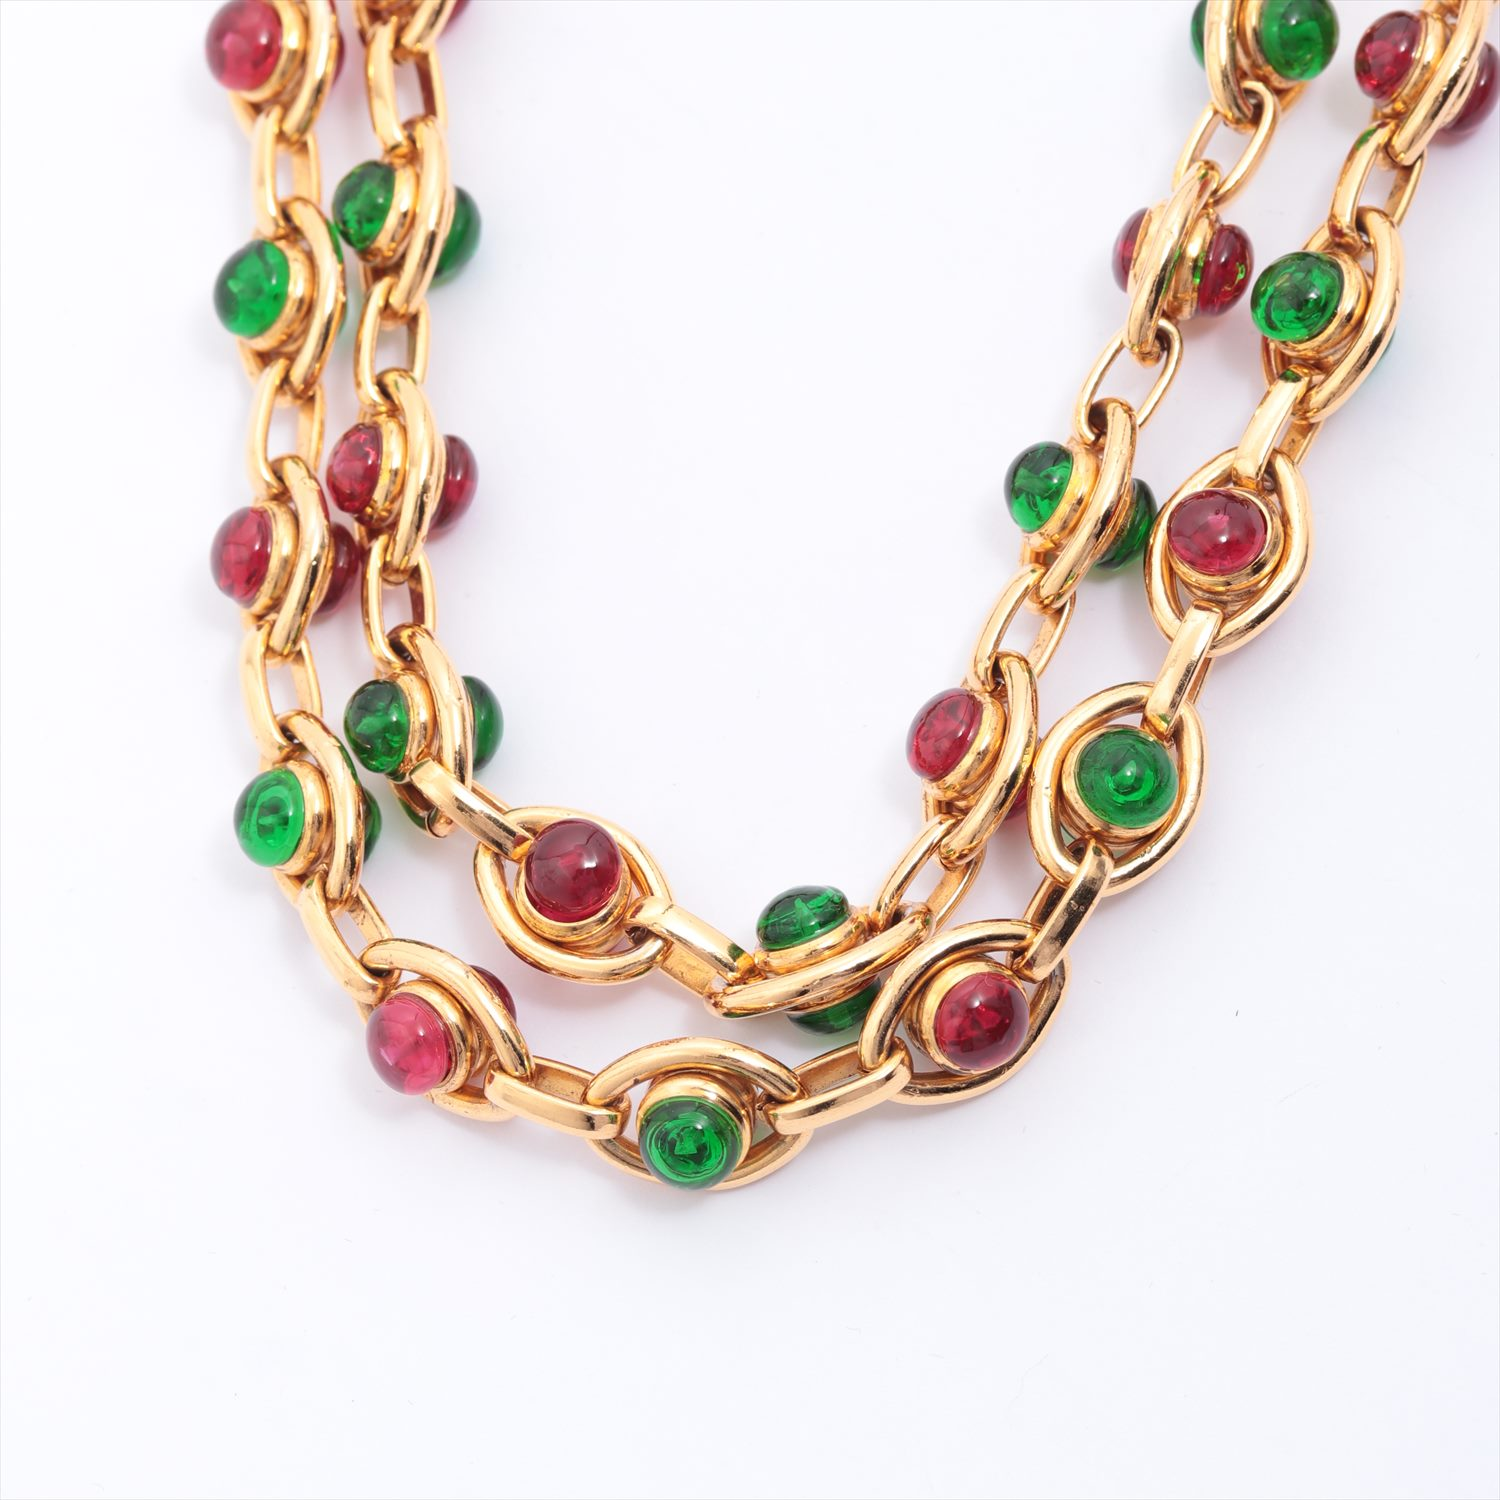 [Used goods] Chanel necklace brass gold Guripoa green red